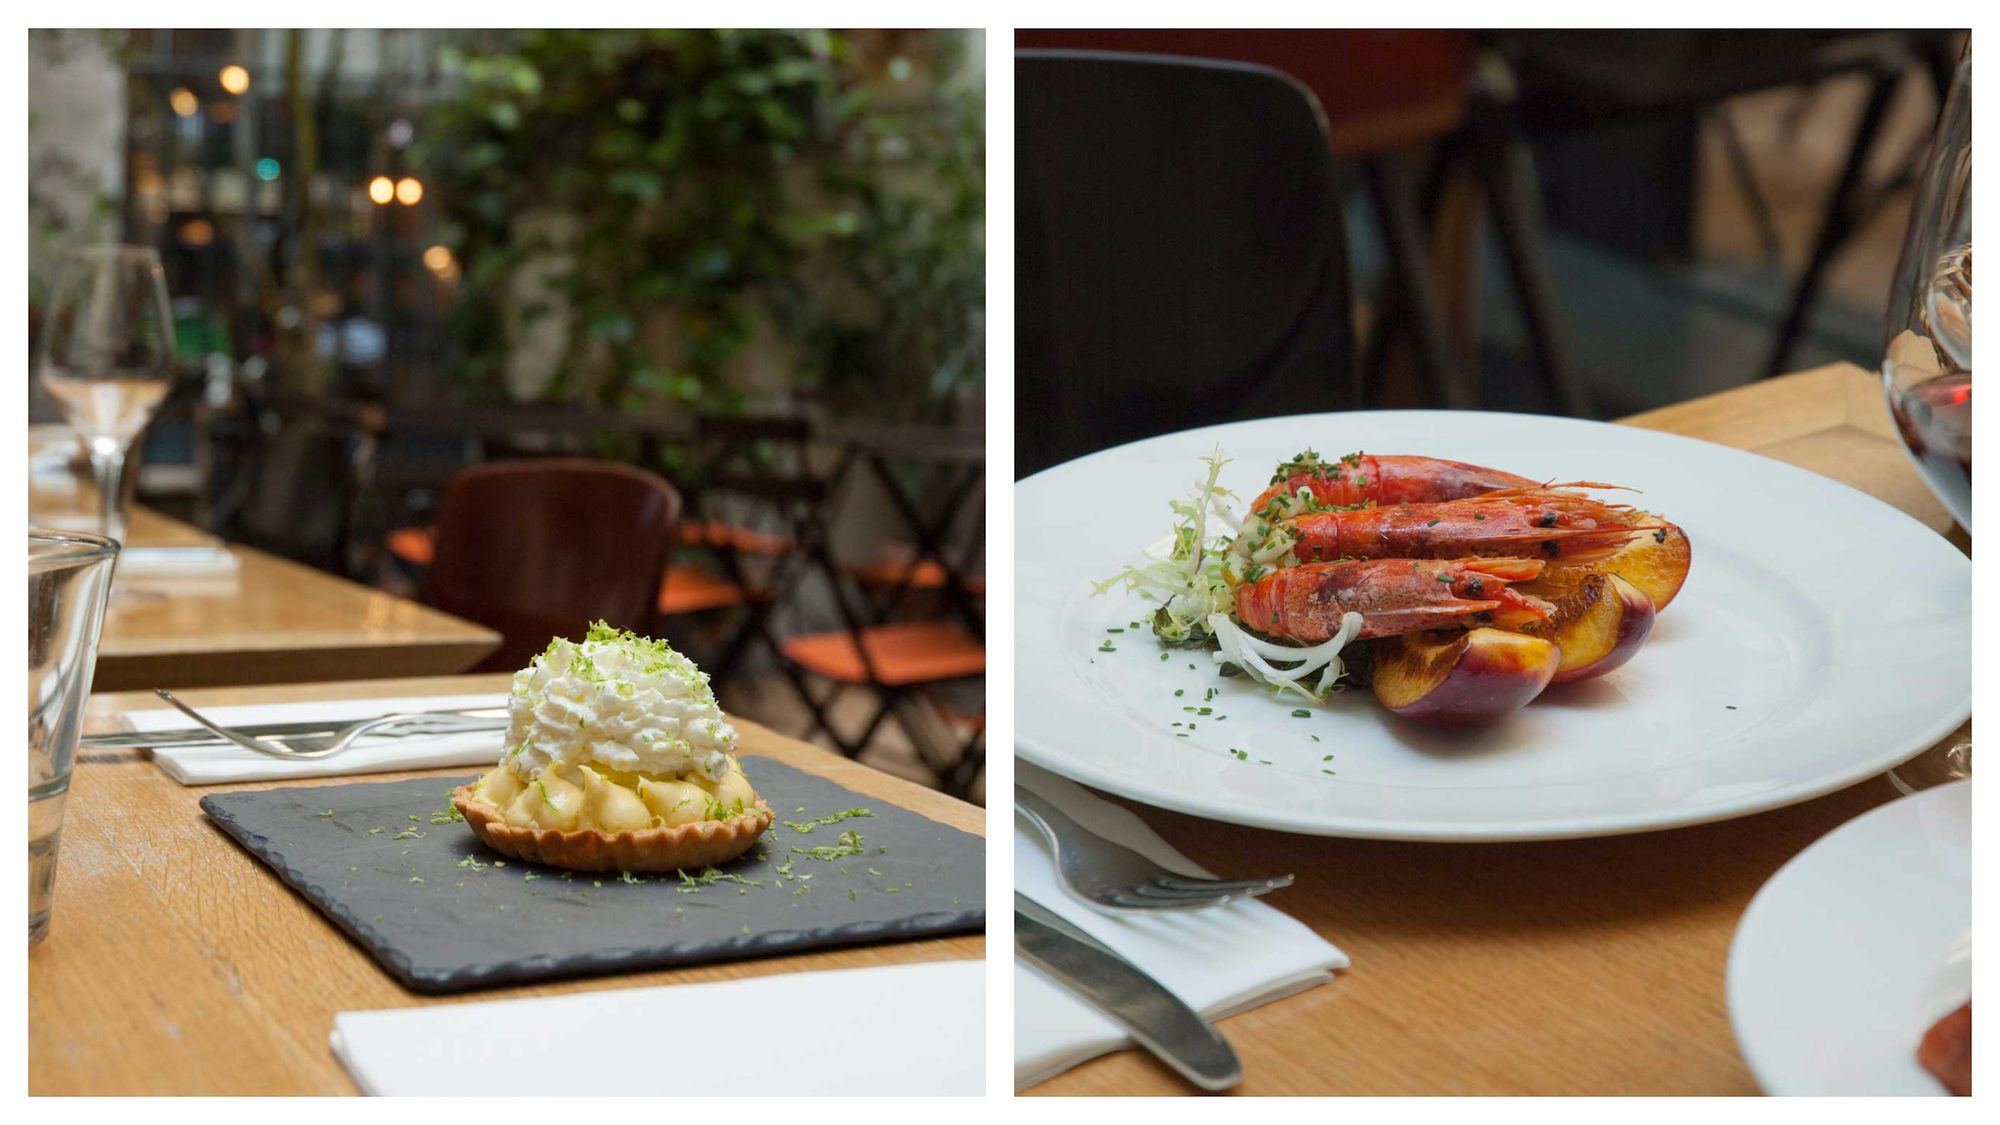 Tucked in the Marais in Paris, Jaja is one of the best places for modern French cuisine like Gambas with roast peaches (right) and lemon tart (left).